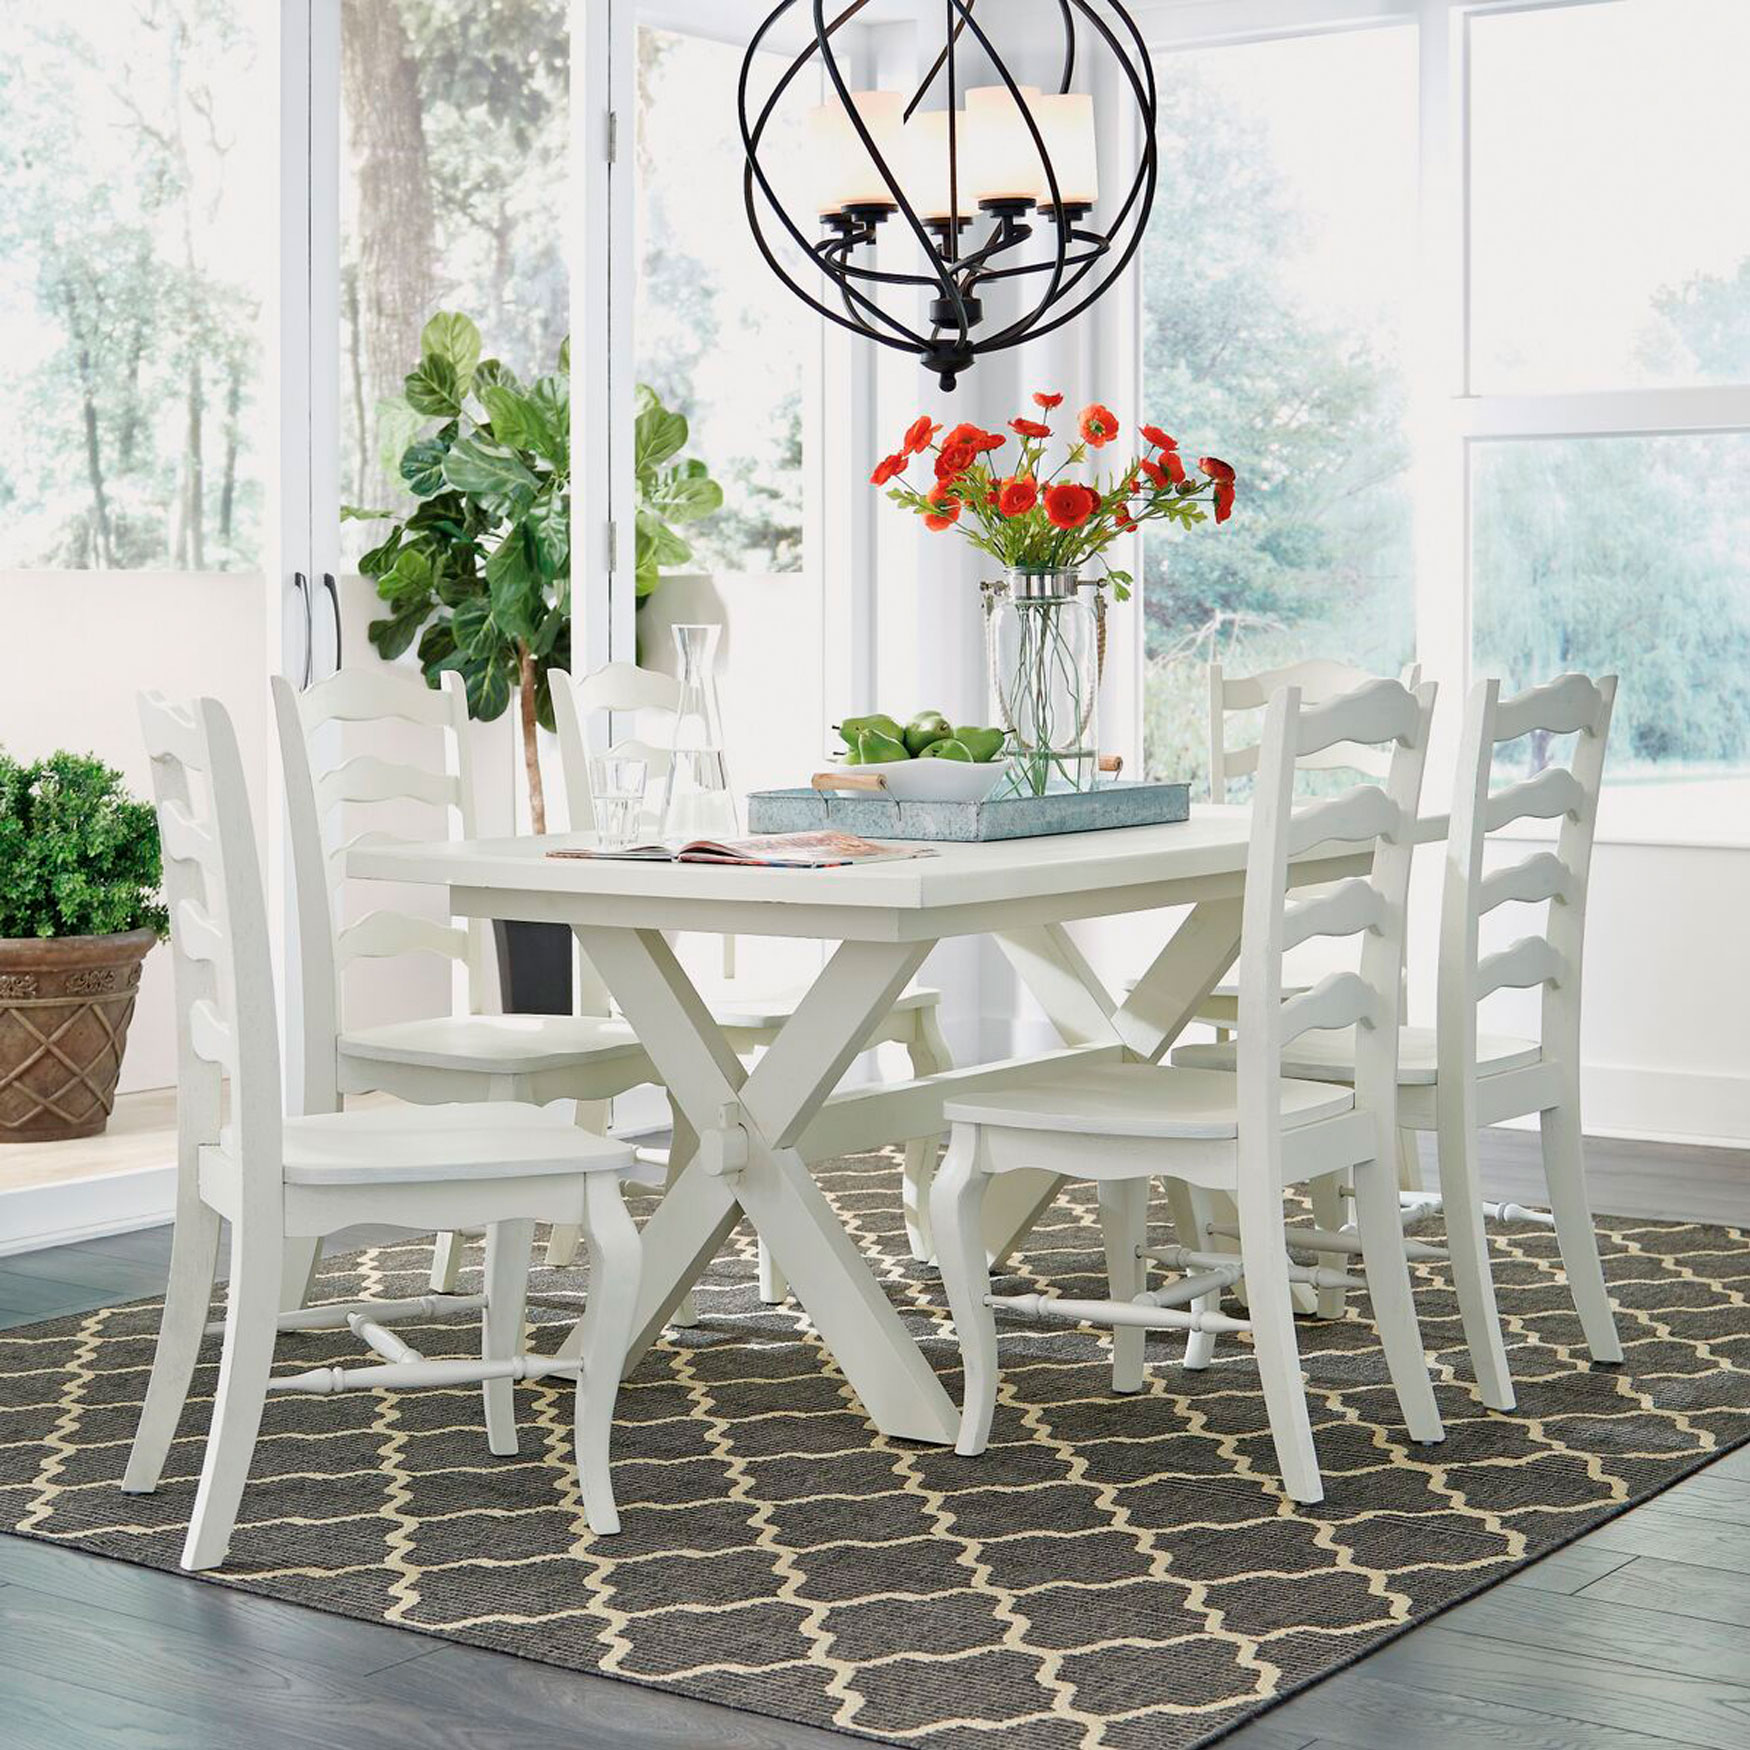 Seaside Lodge Dining Table, WHITE